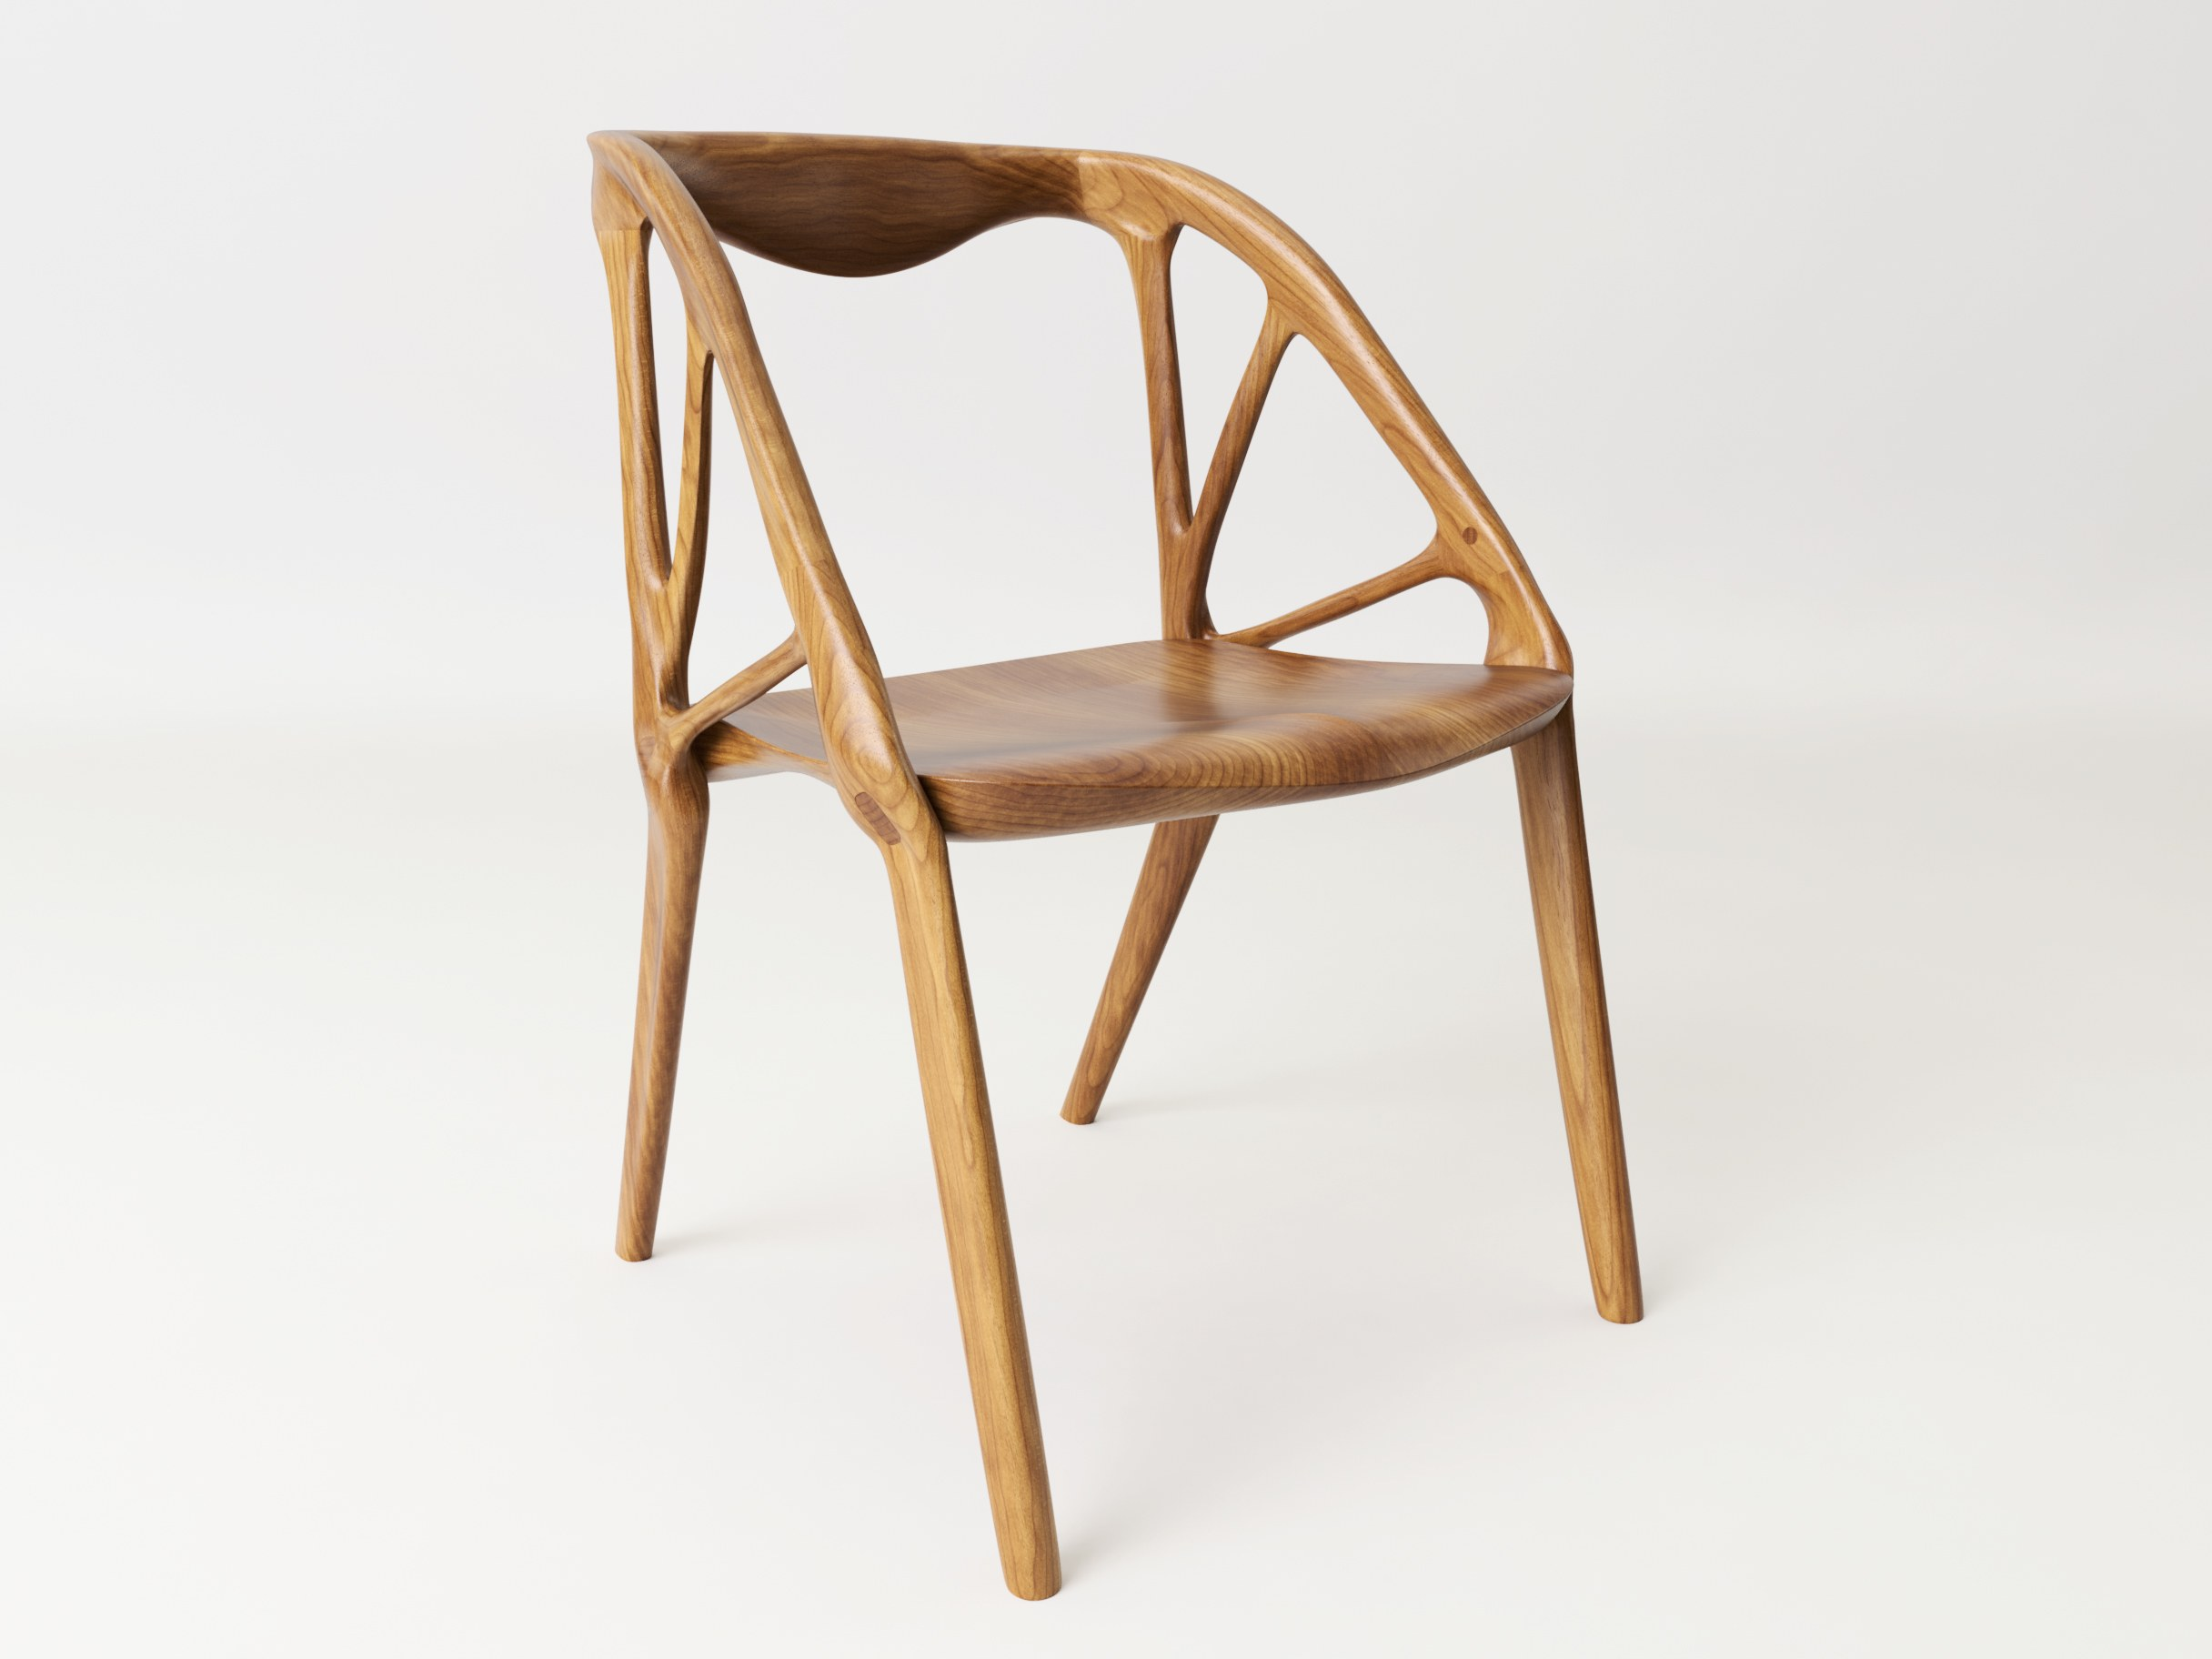 Algorithms Are Designing Chairs Now